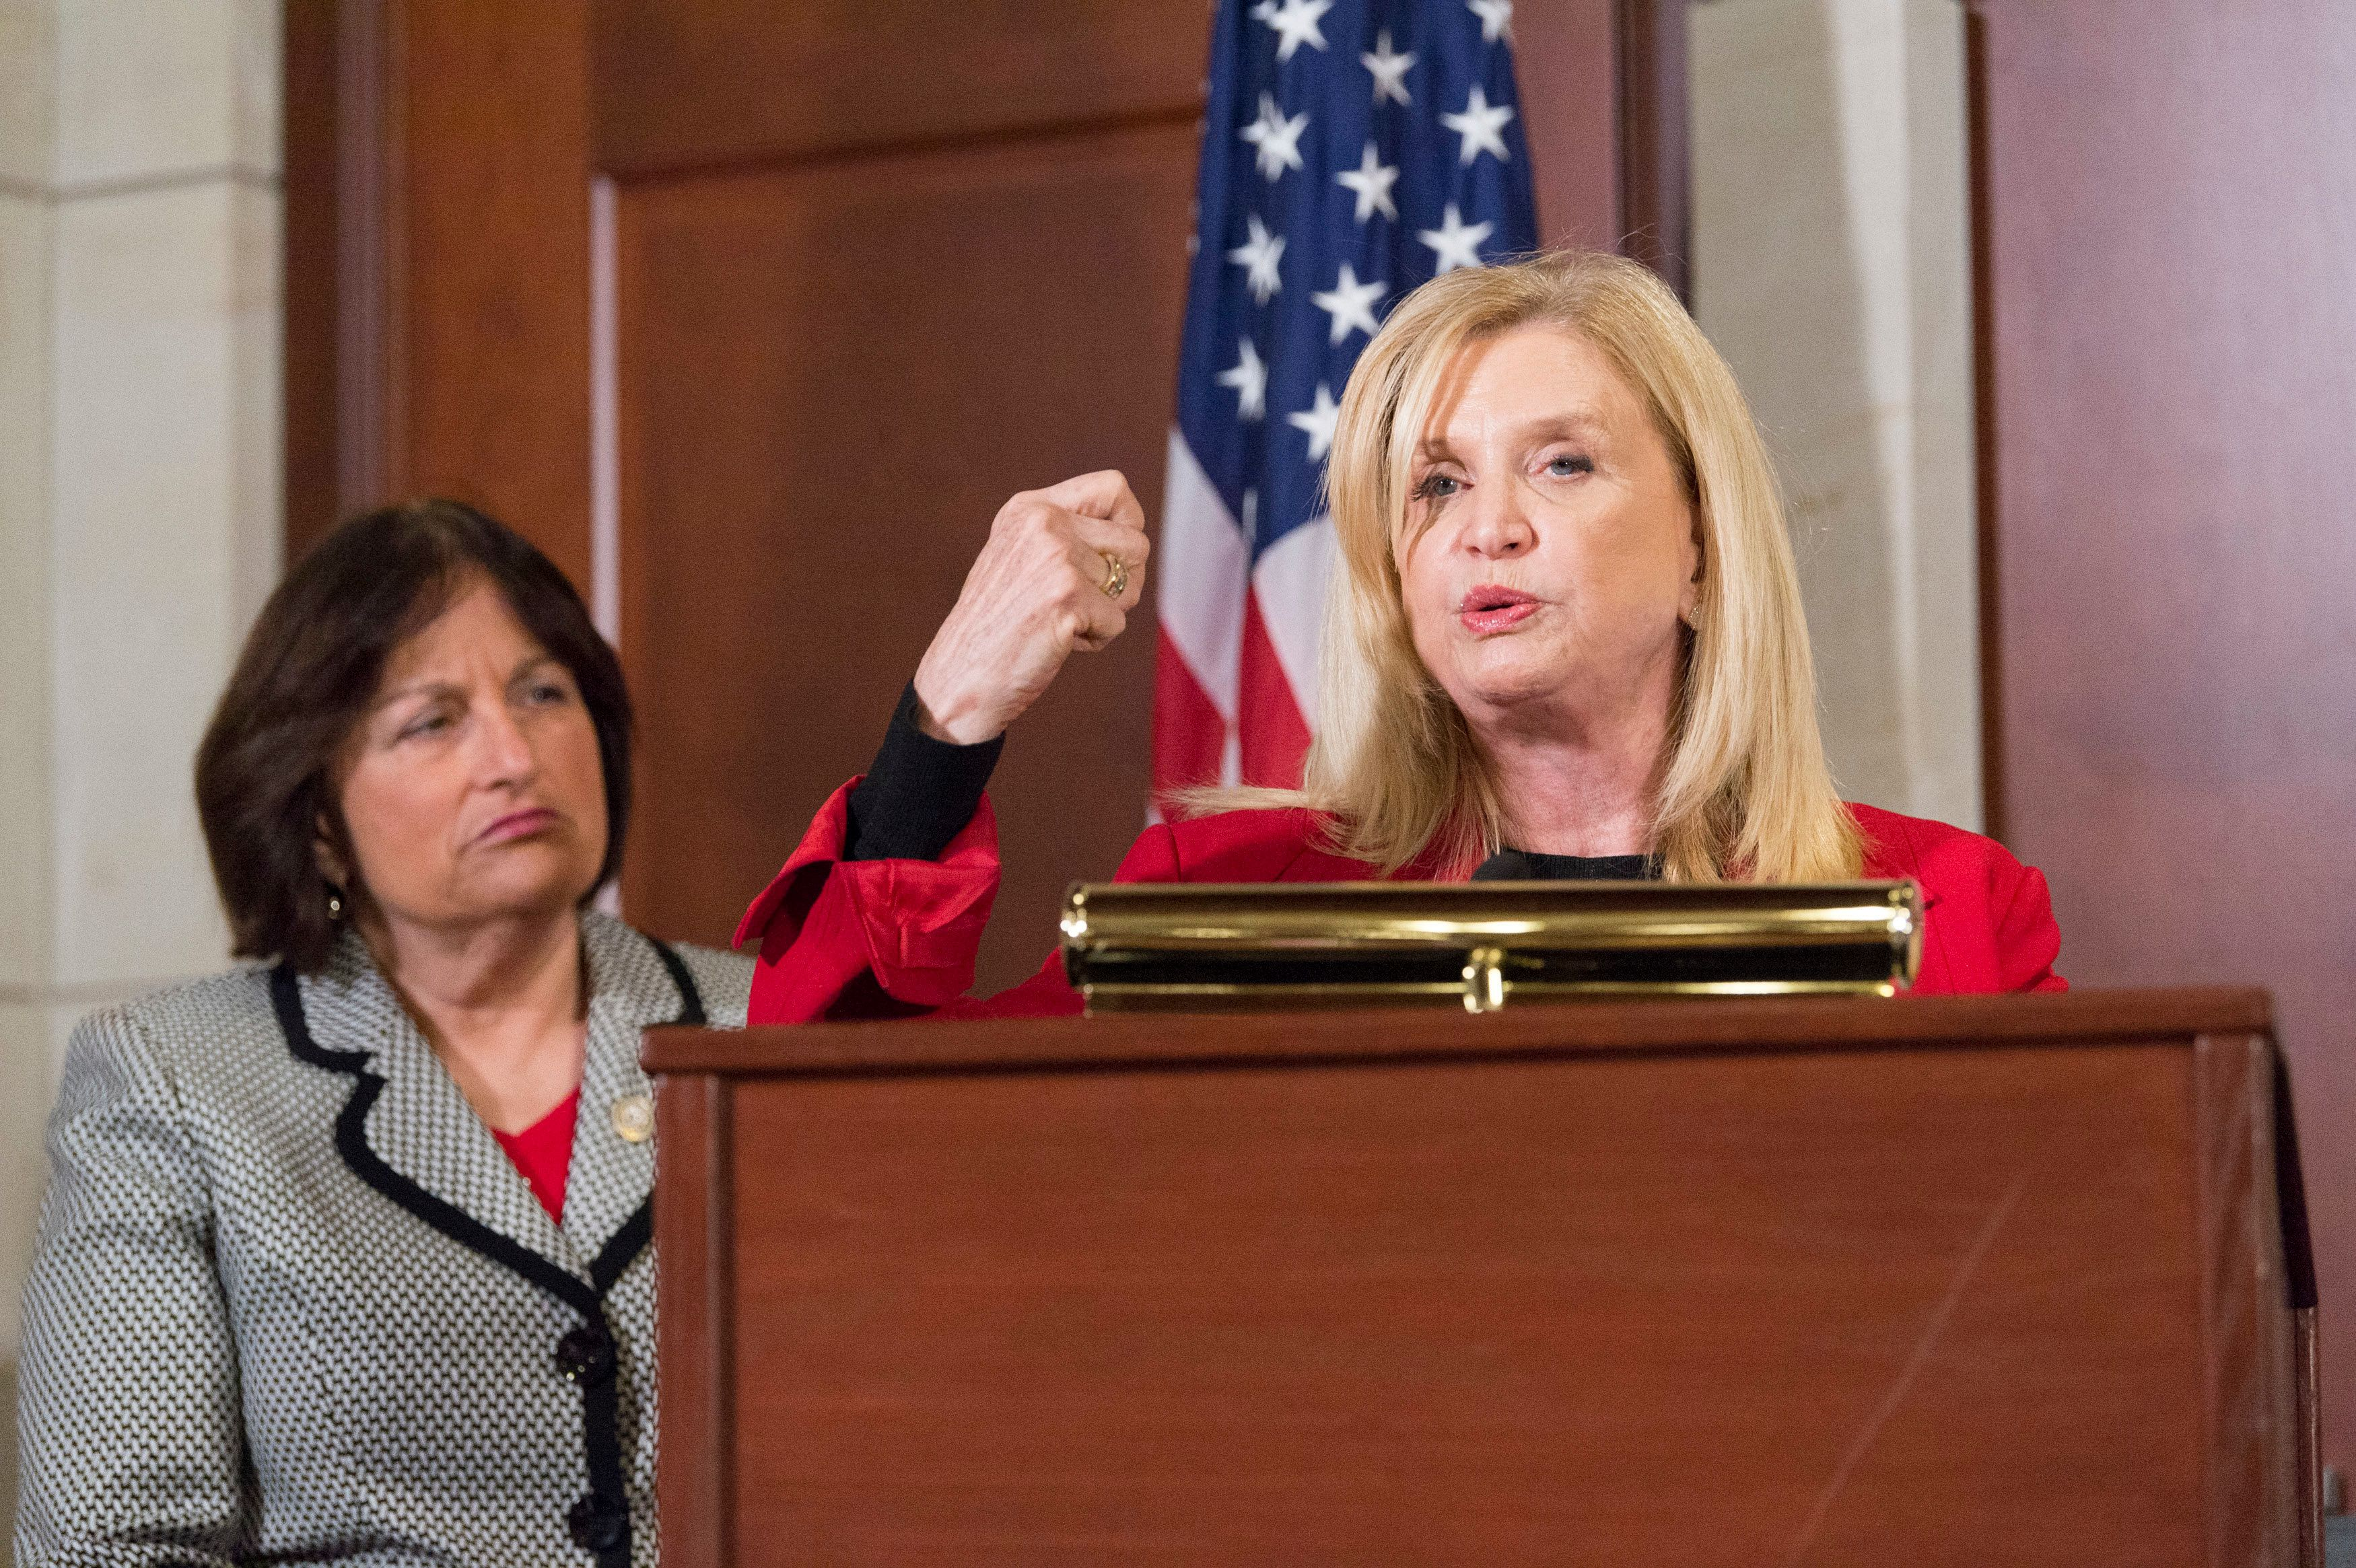 Rep. Carolyn Maloney, flanked by Rep. Annie Kuster, speaks out against workplace cover-ups of sexual misconduct.